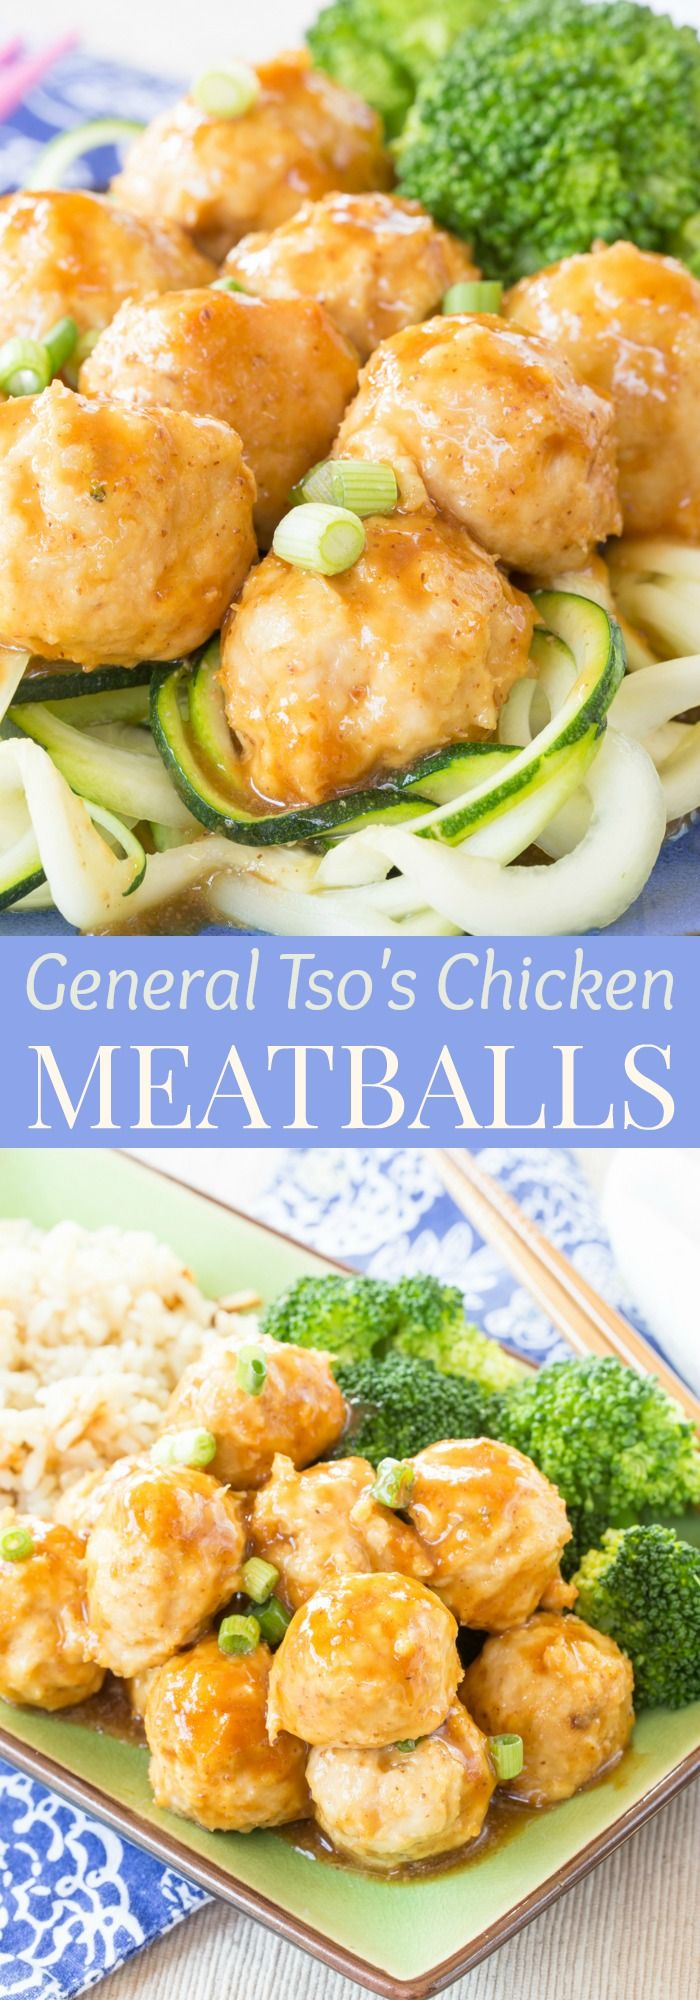 General Tso's Chicken Meatballs - this sweet and savory meatball recipe is a healthier way to enjoy the flavors of your favorite Chinese takeout. Gluten free and grain free options too!